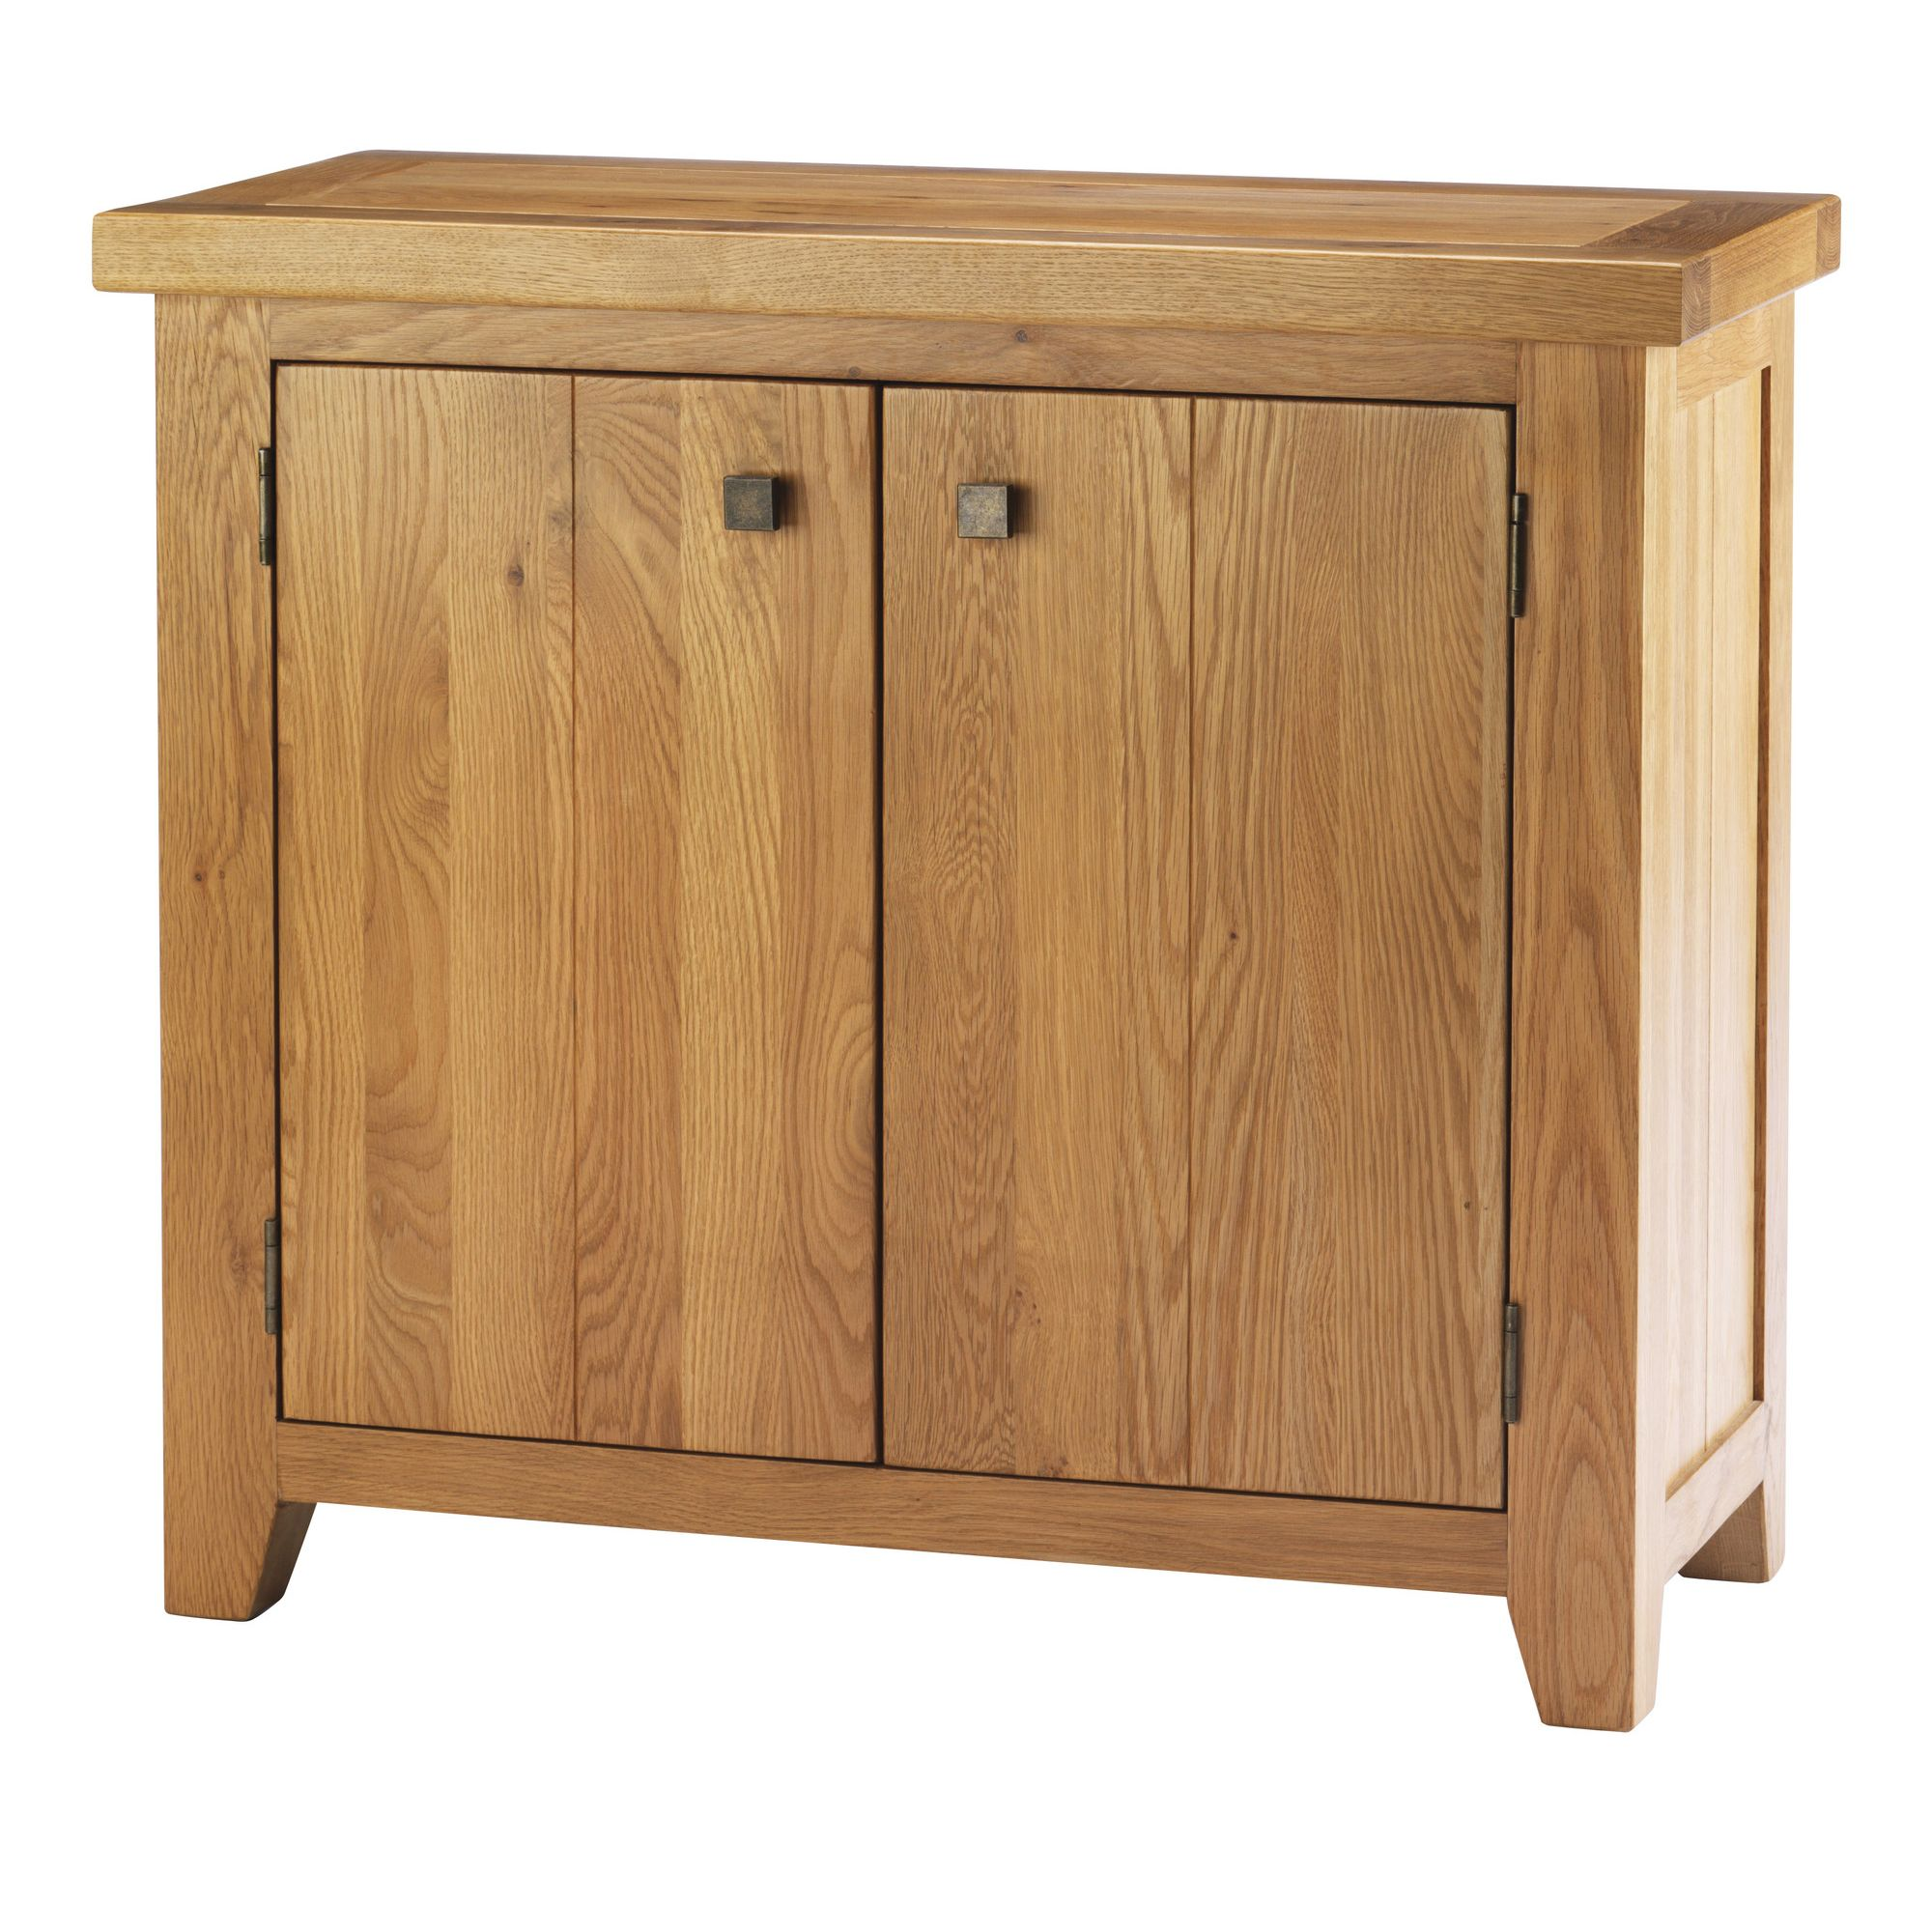 Thorndon Taunton Small Sideboard in Medium Oak at Tesco Direct